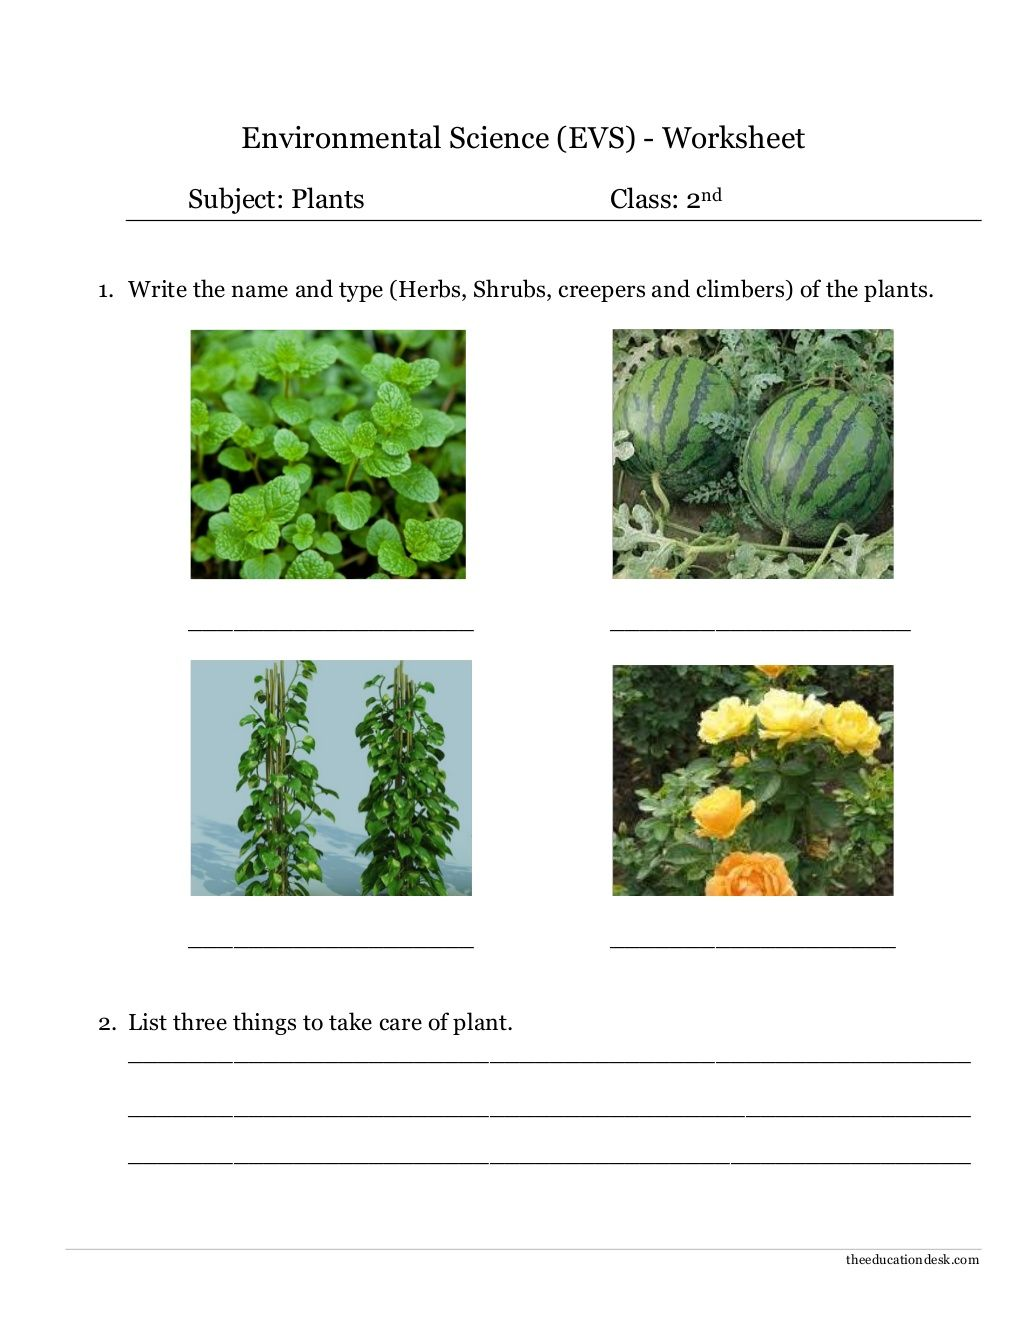 Environmental science evs plants worksheet class ii by theeducationdesk via slideshare also rh pinterest